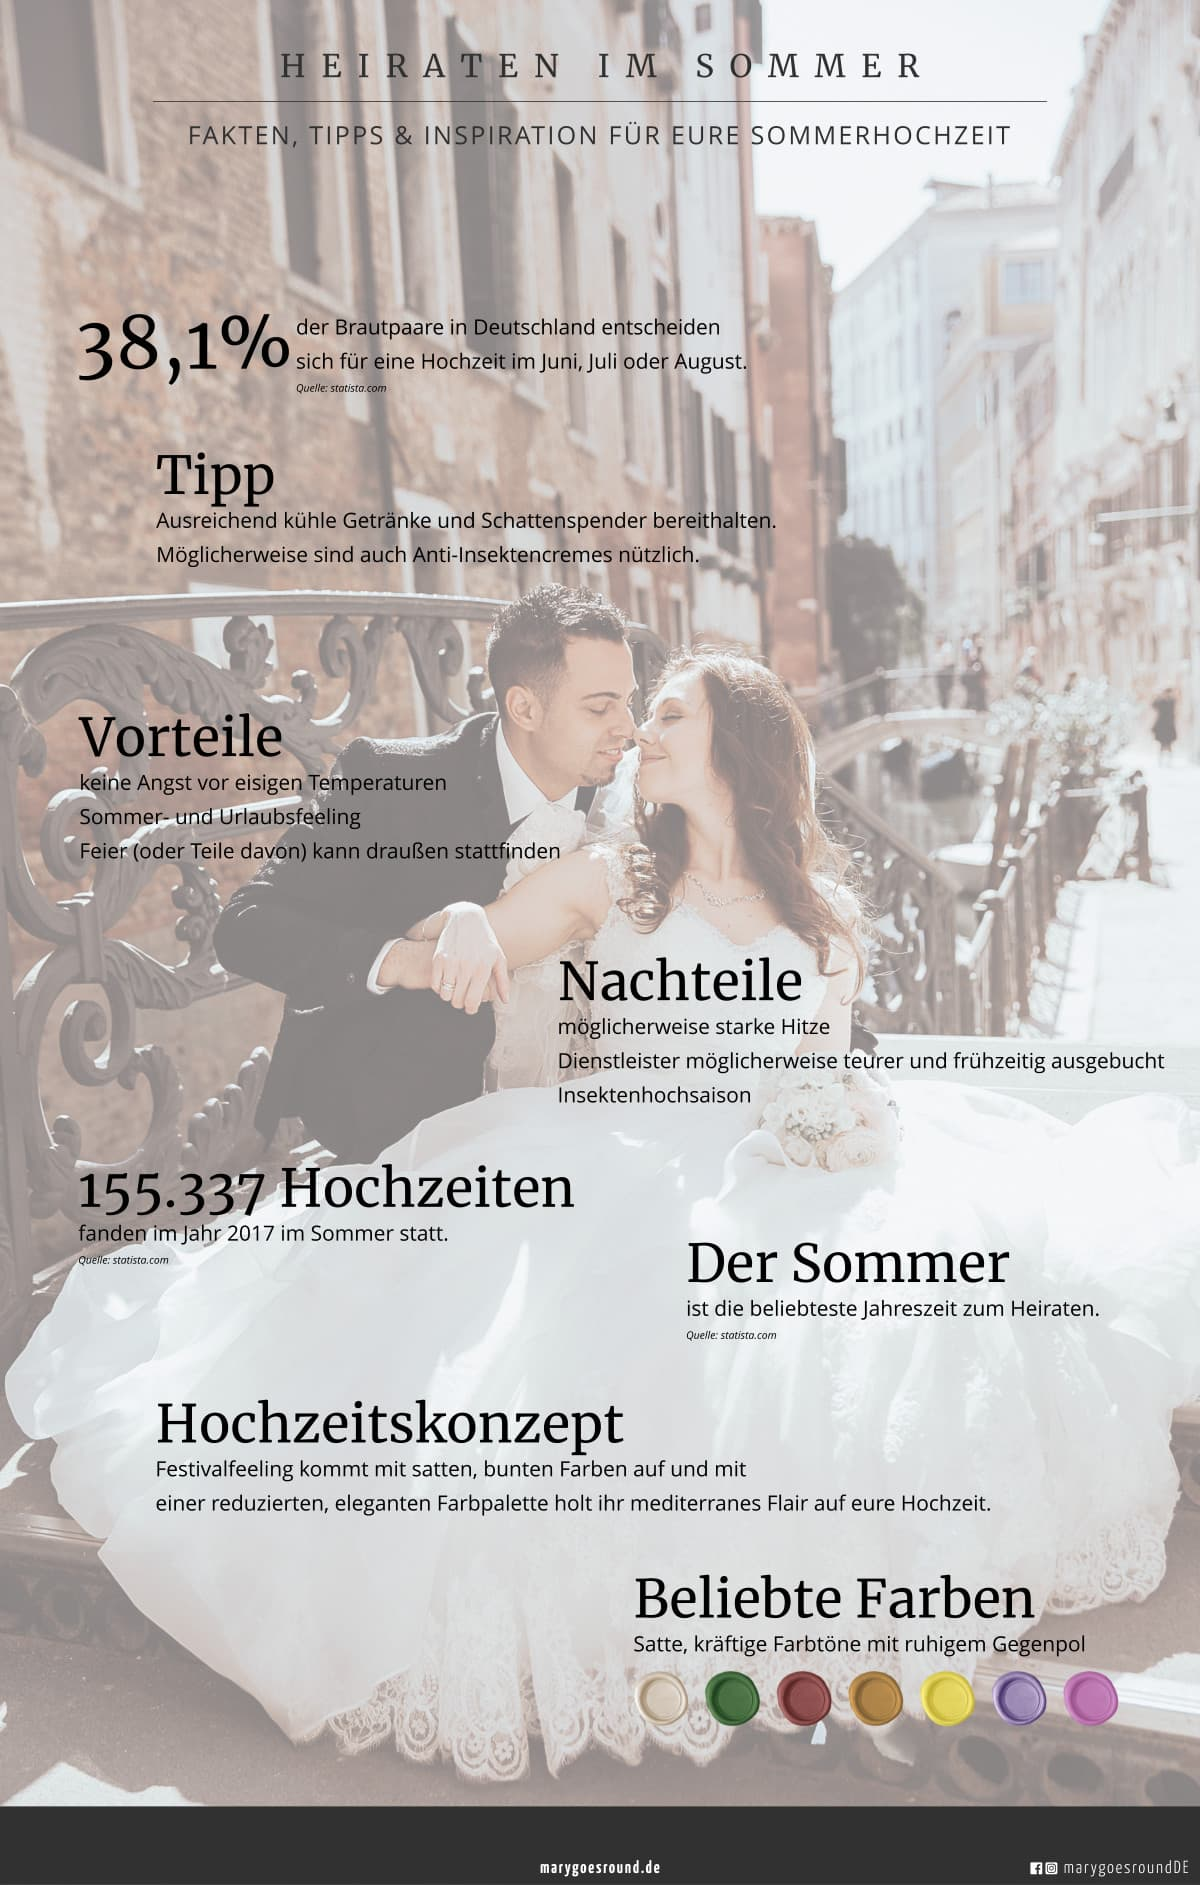 "Blogserie ""Hochzeit 4 Stagioni"": Heiraten im Sommer, Infografik 